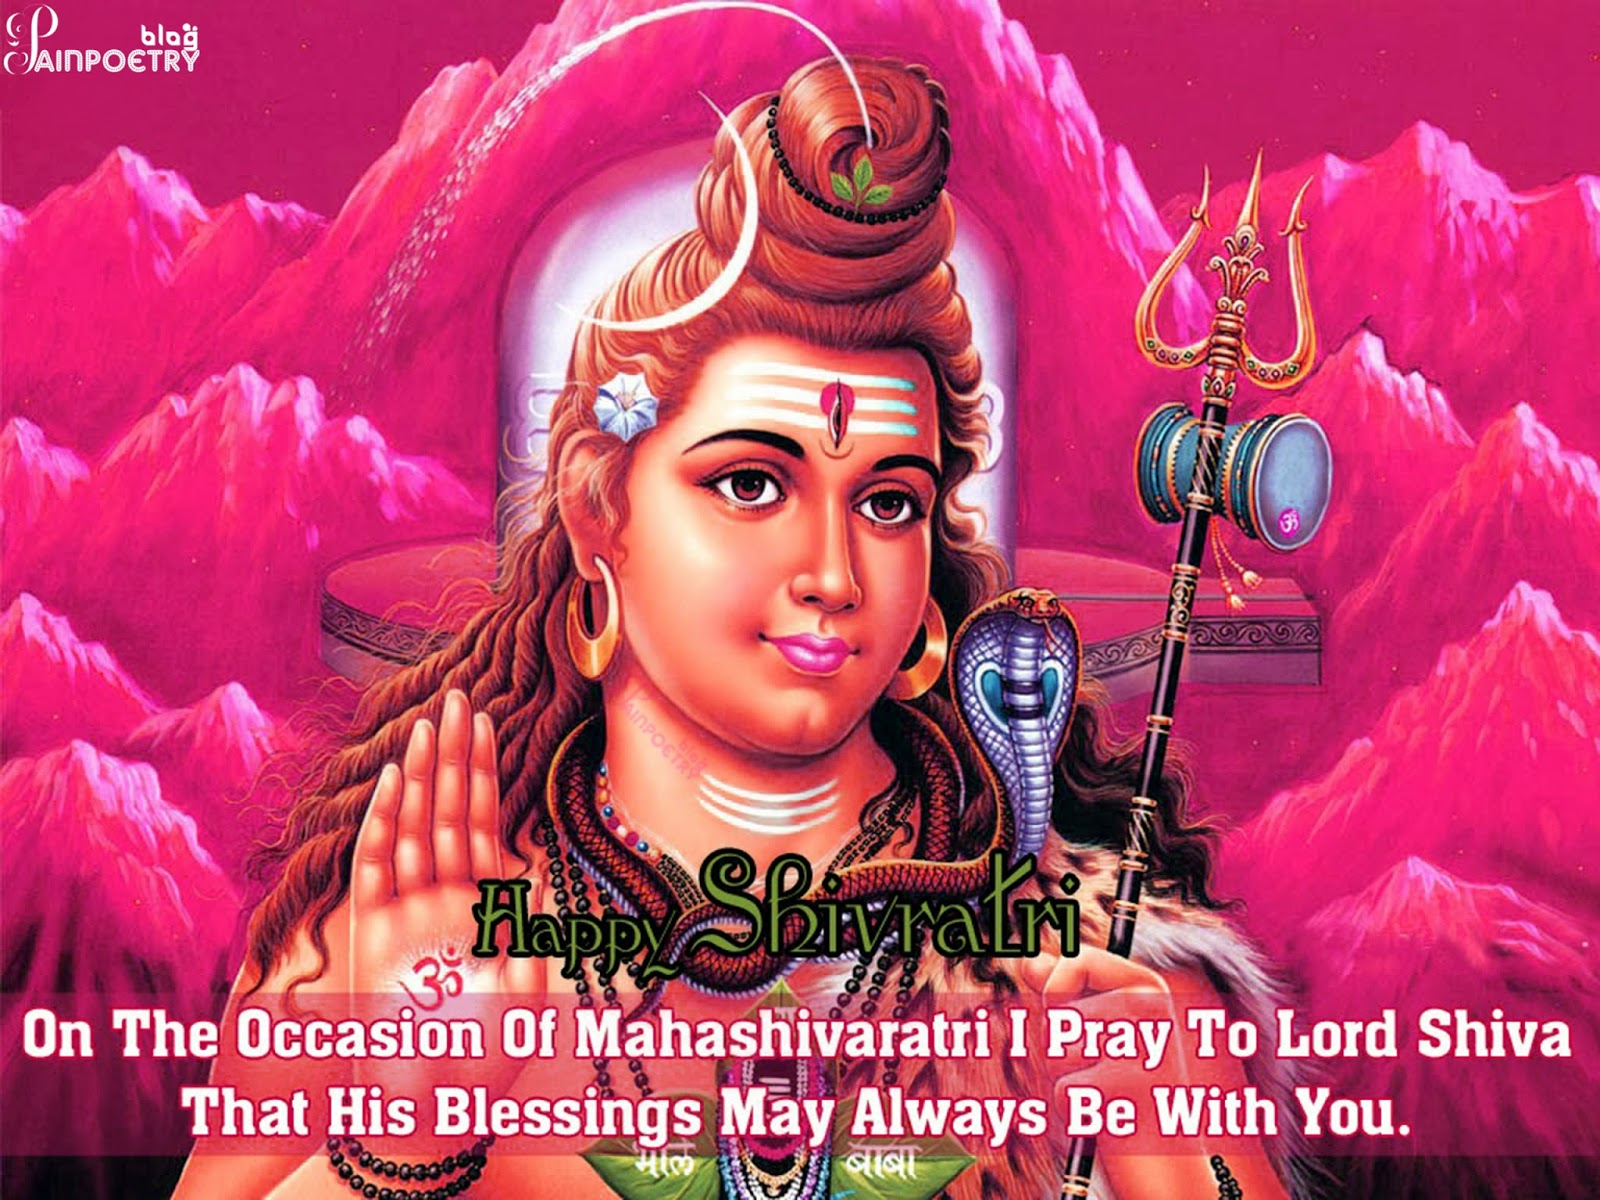 Happy-Maha-Shivratri-SMS-Messages-Image-Card-Shiva-Maharaj-HD-Wide